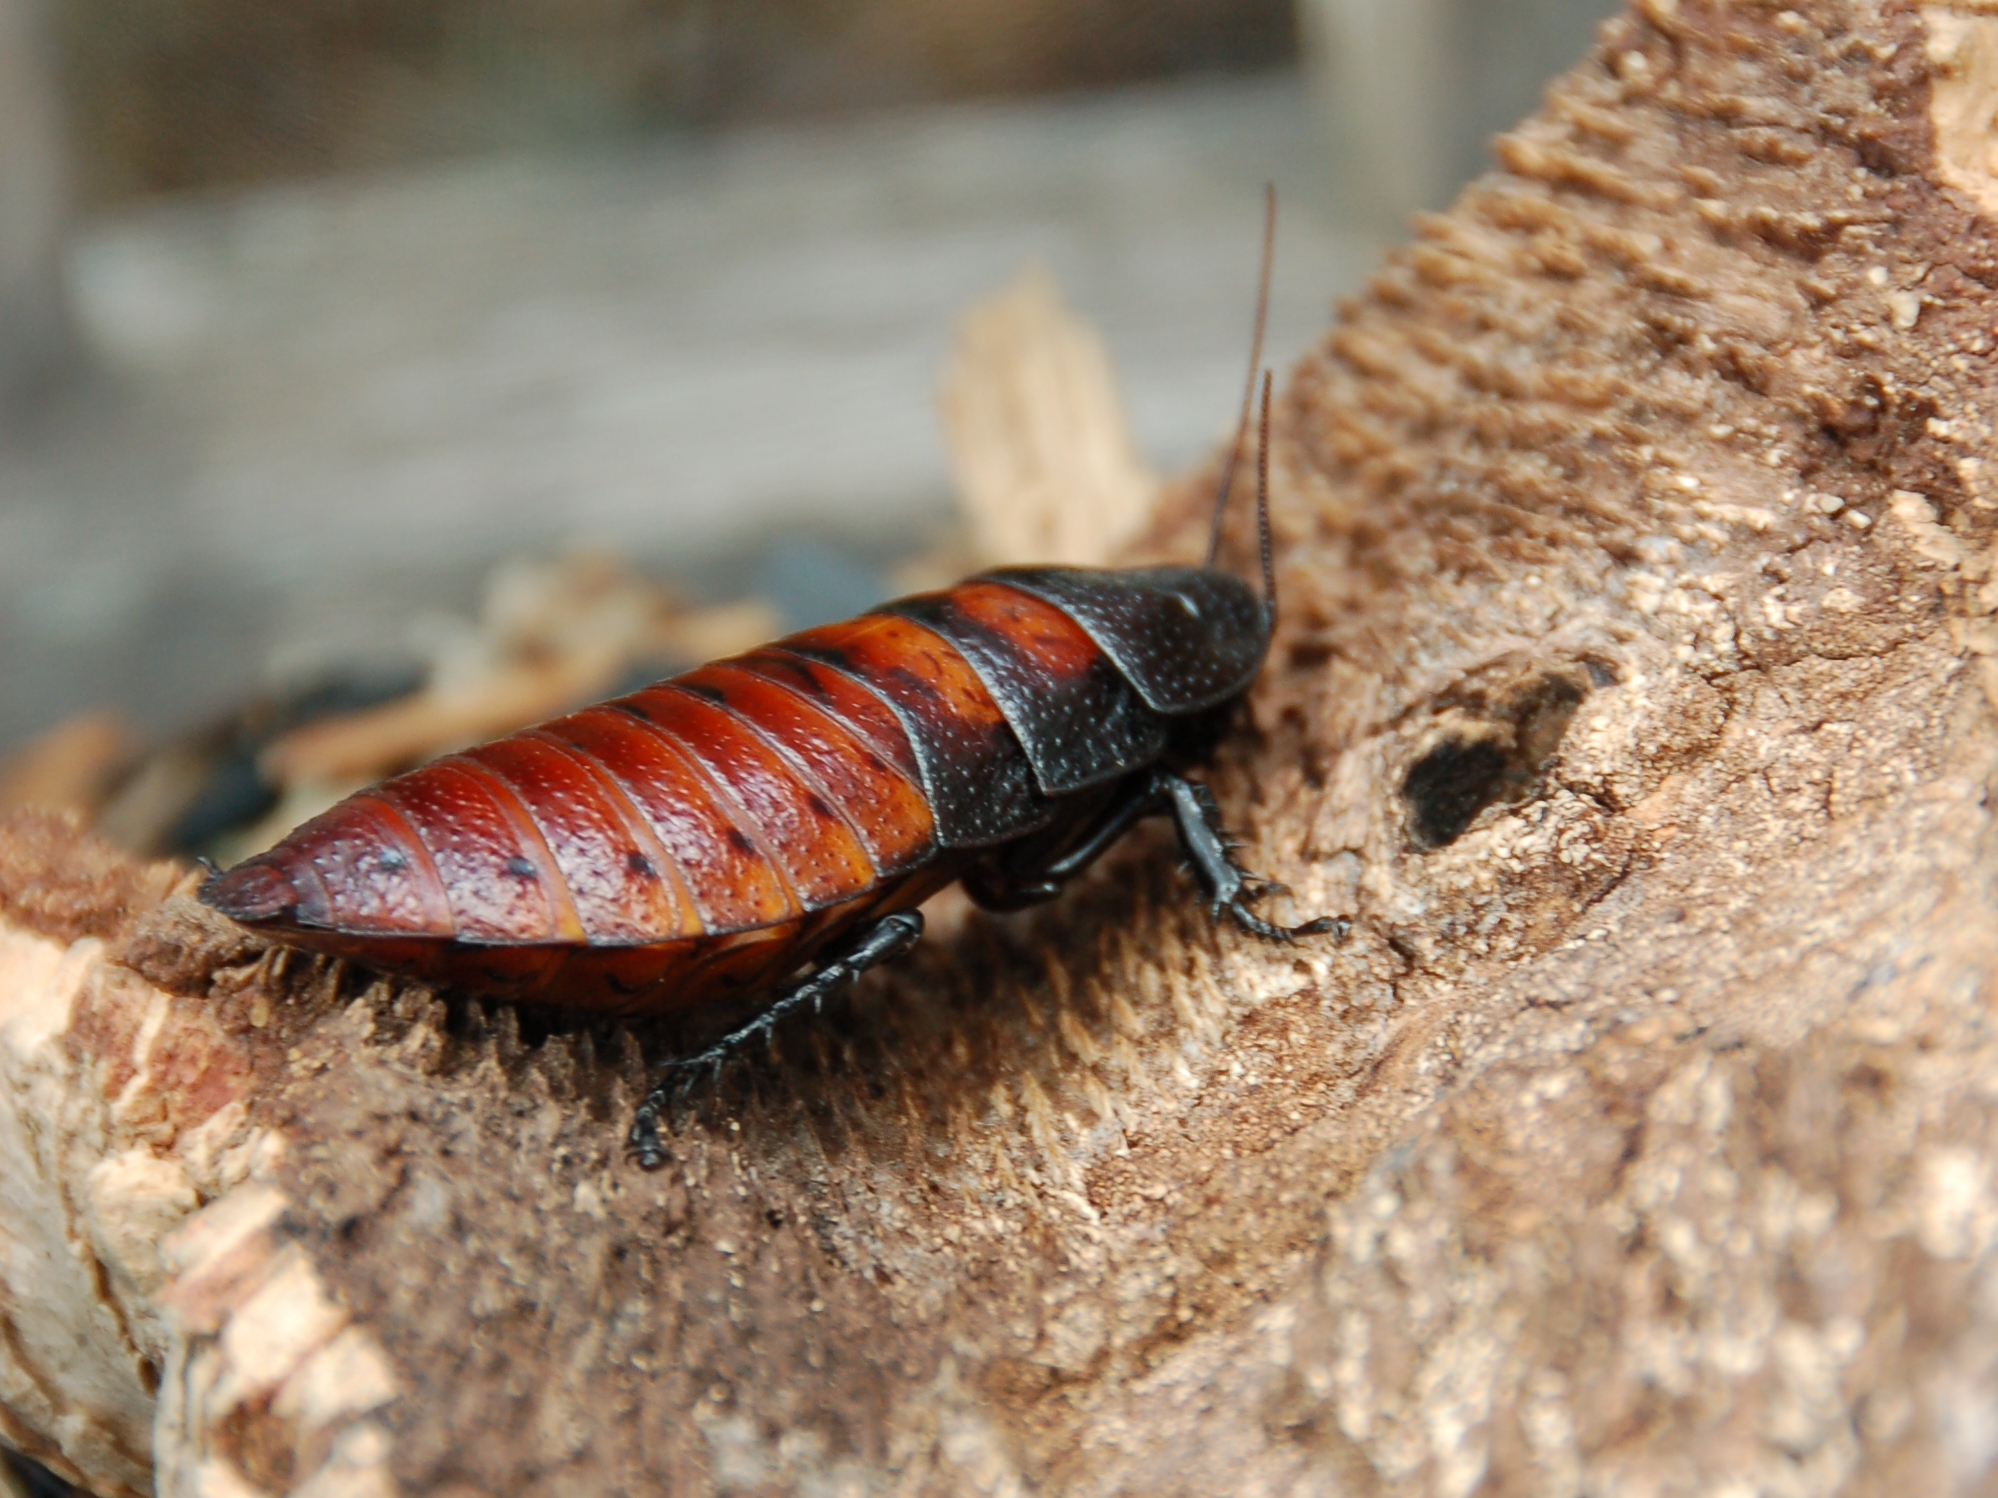 Female_Madagascar_hissing_cockroach